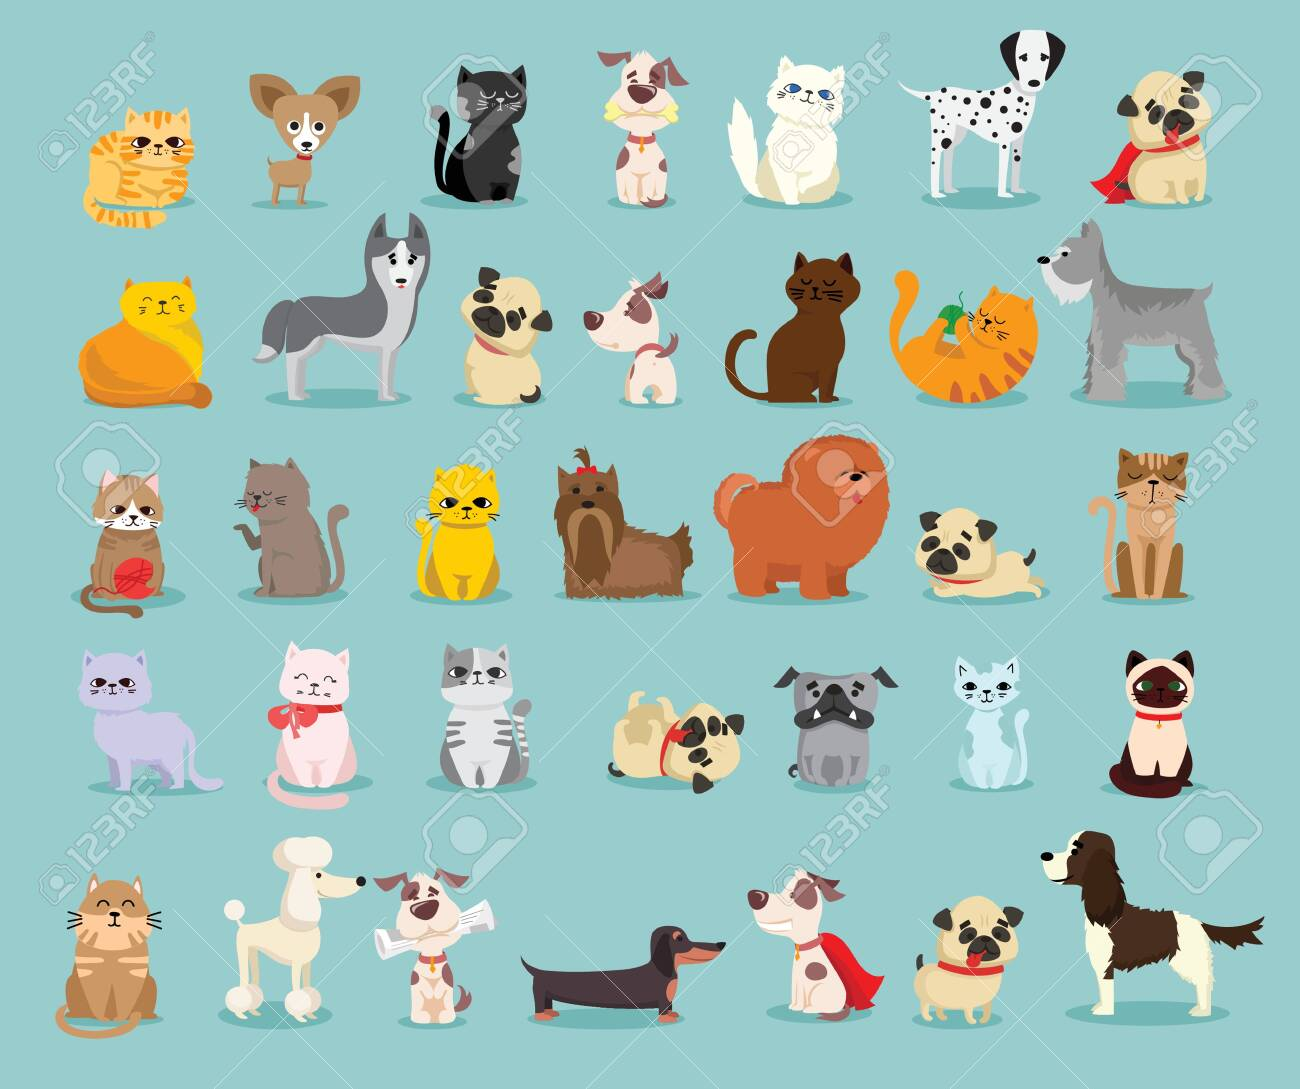 Different breed of dogs and cats. - 133335243